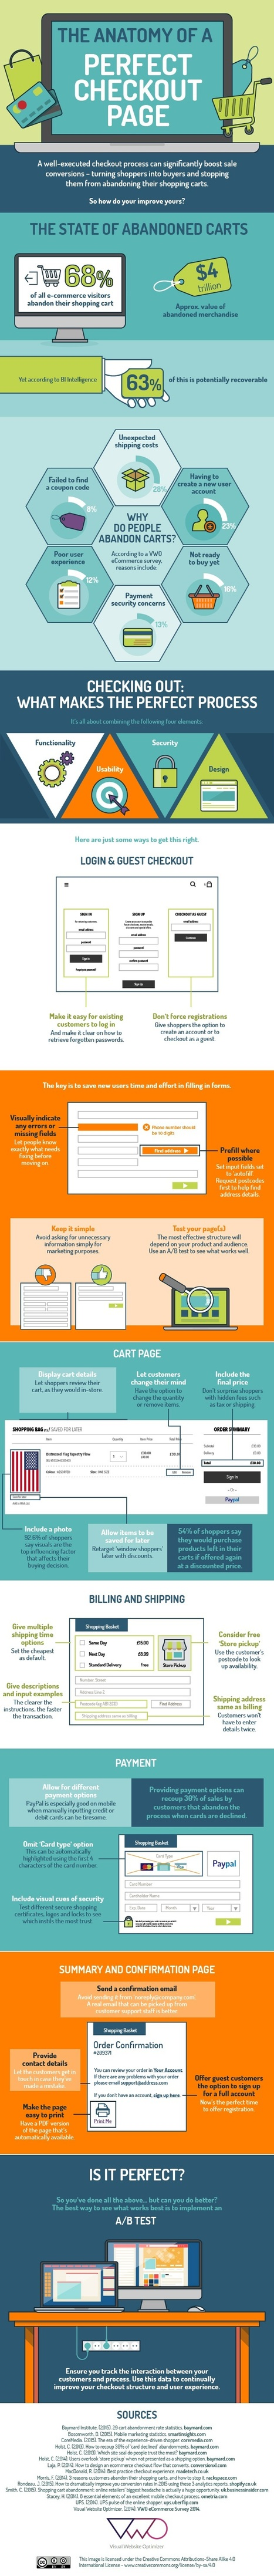 The anatomy of a perfect checkout page (infographic) | Netimperative - latest digital marketing news | New Customer & Employee Management | Scoop.it